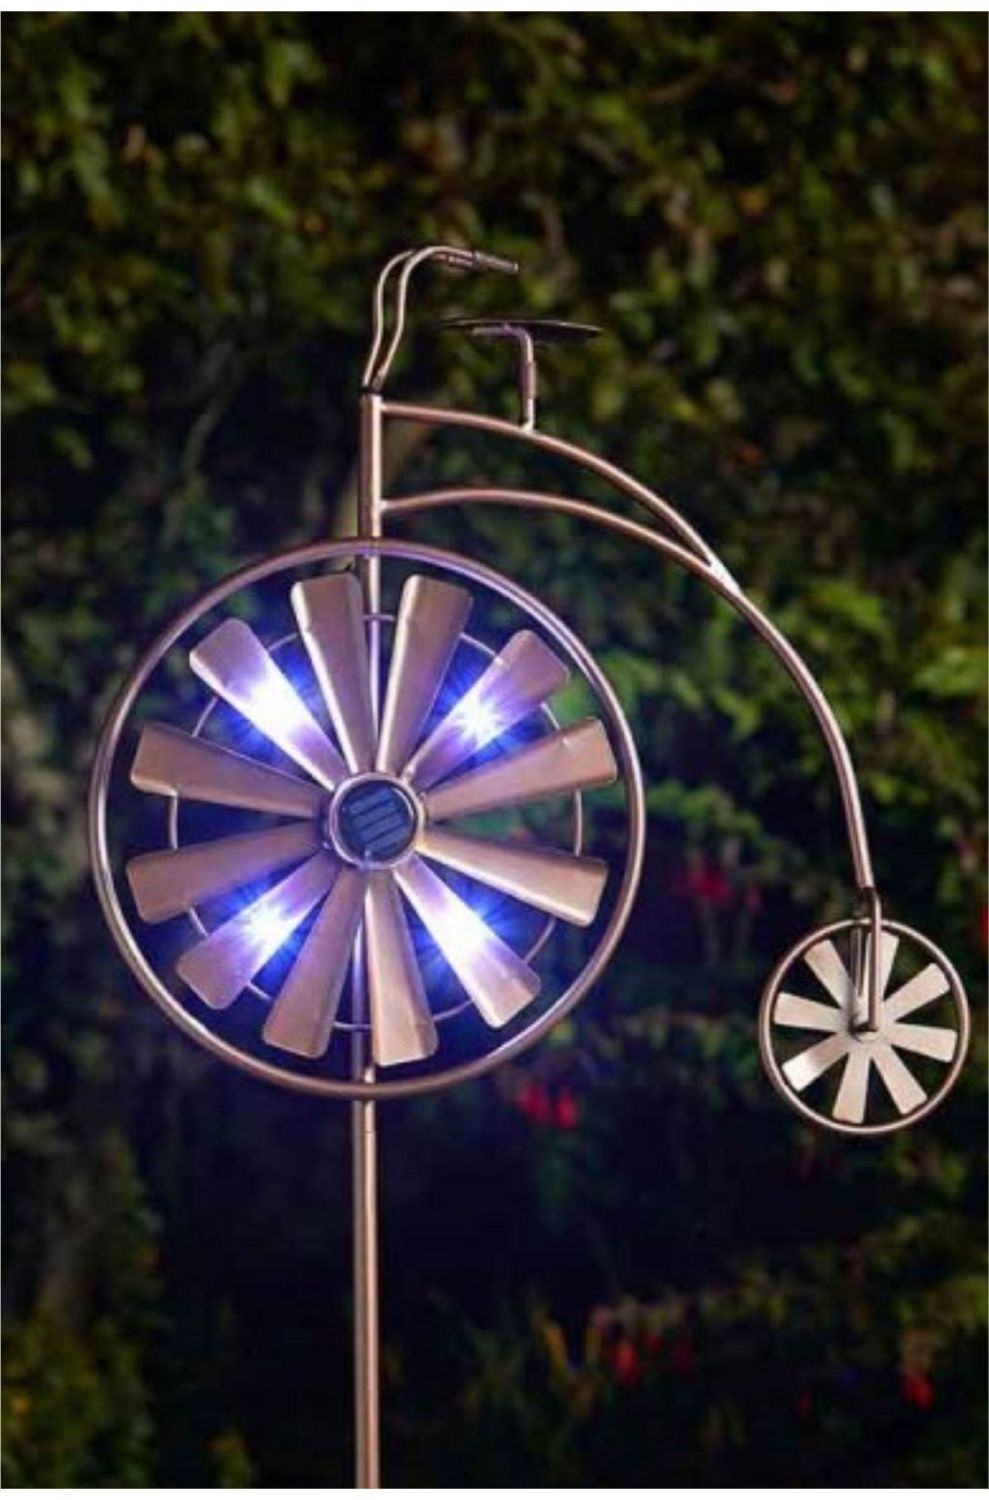 PENNY FARTHING WIND SPINNER